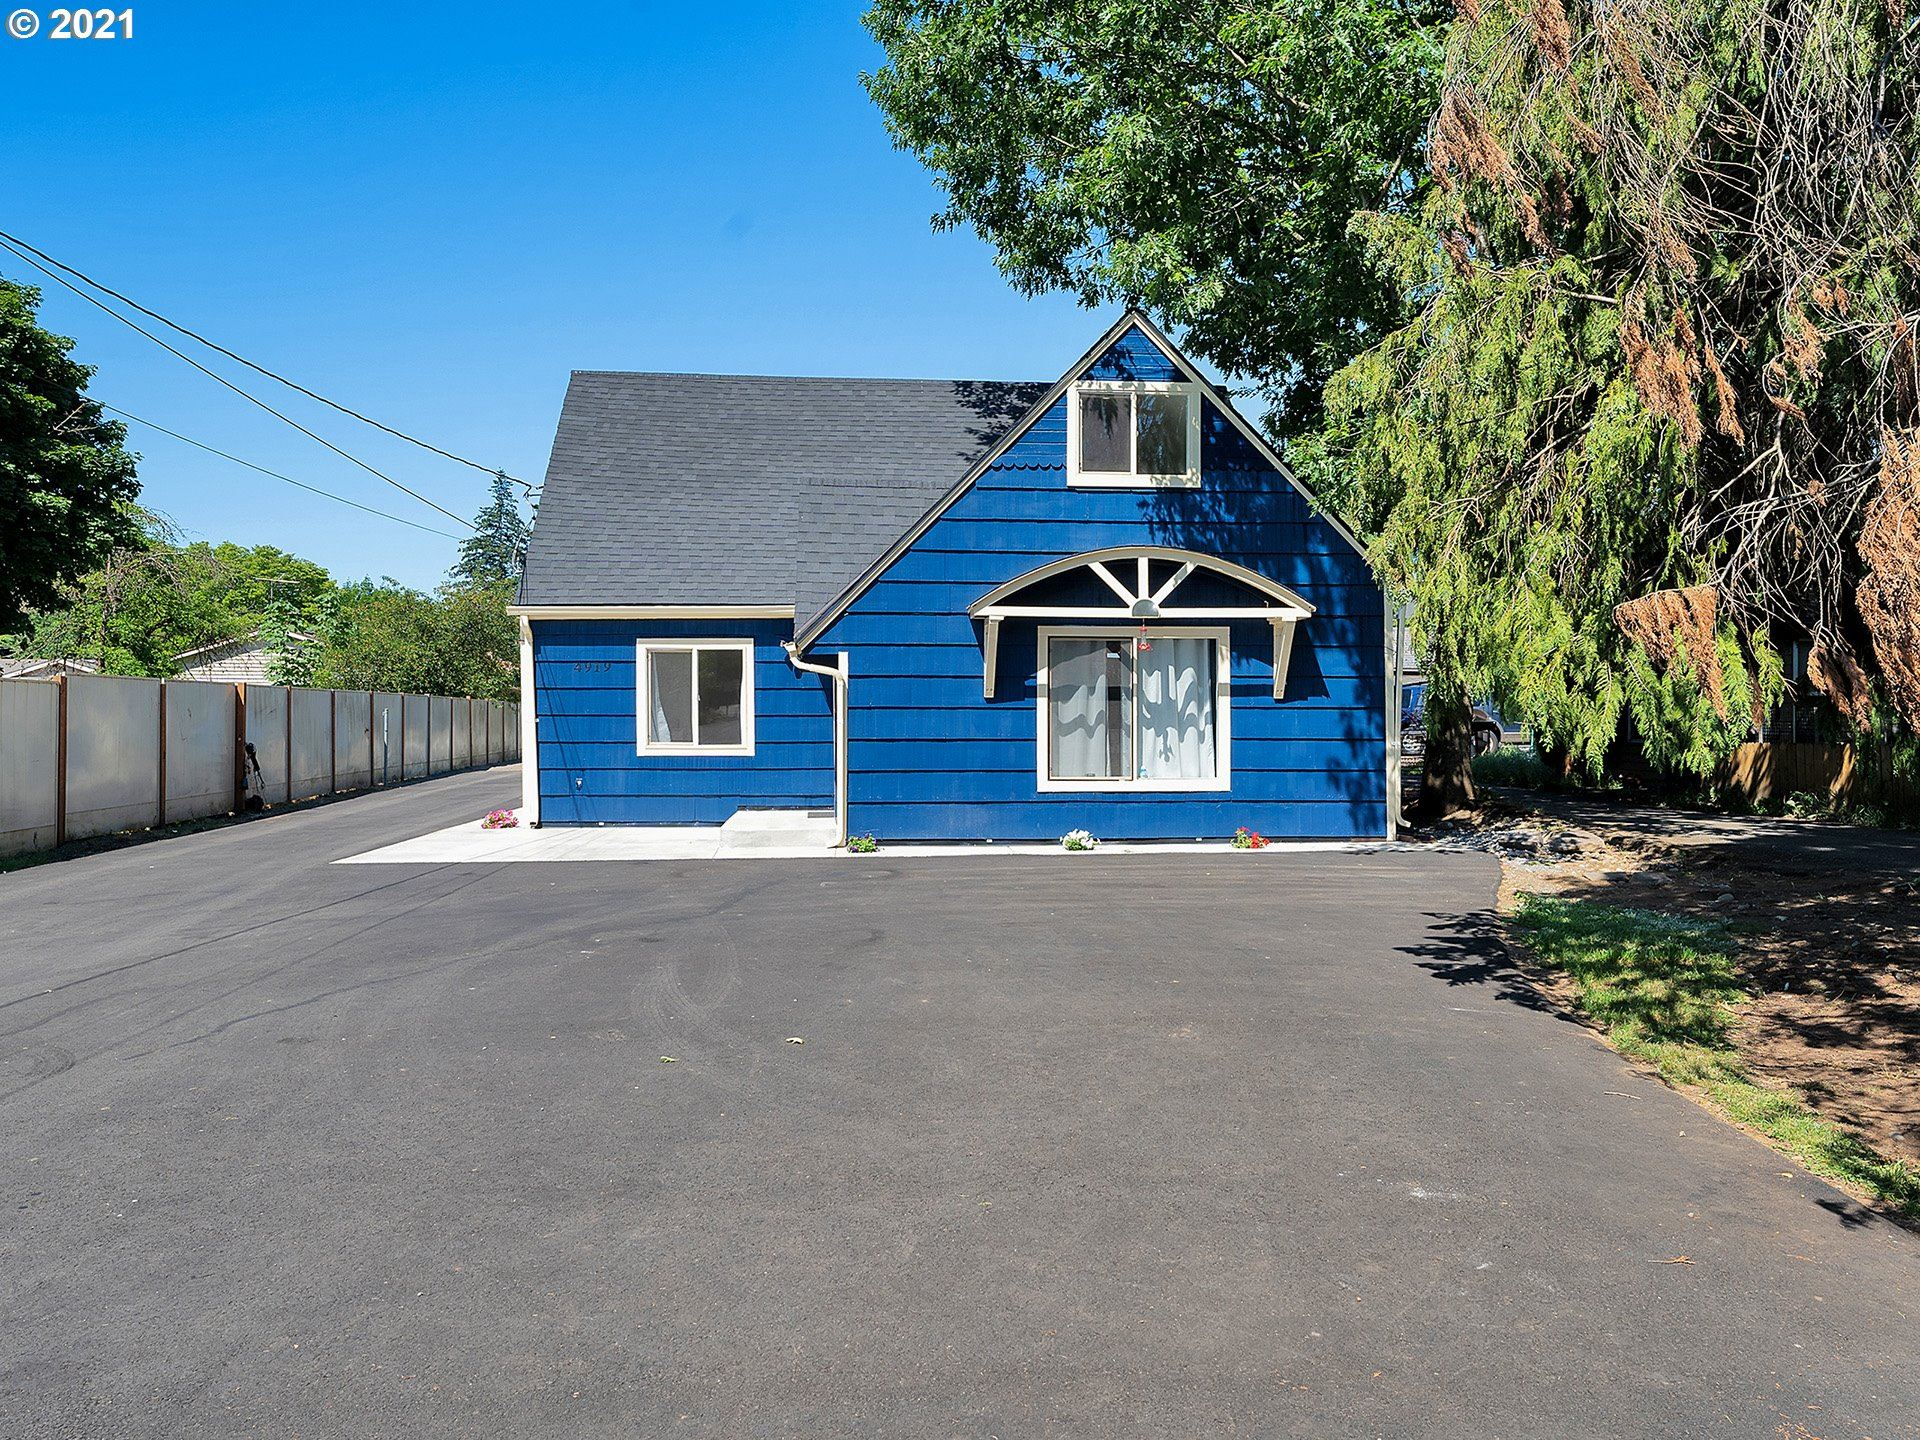 4919 SE 111TH AVE, Portland, OR 97266 - MLS#: 21592616